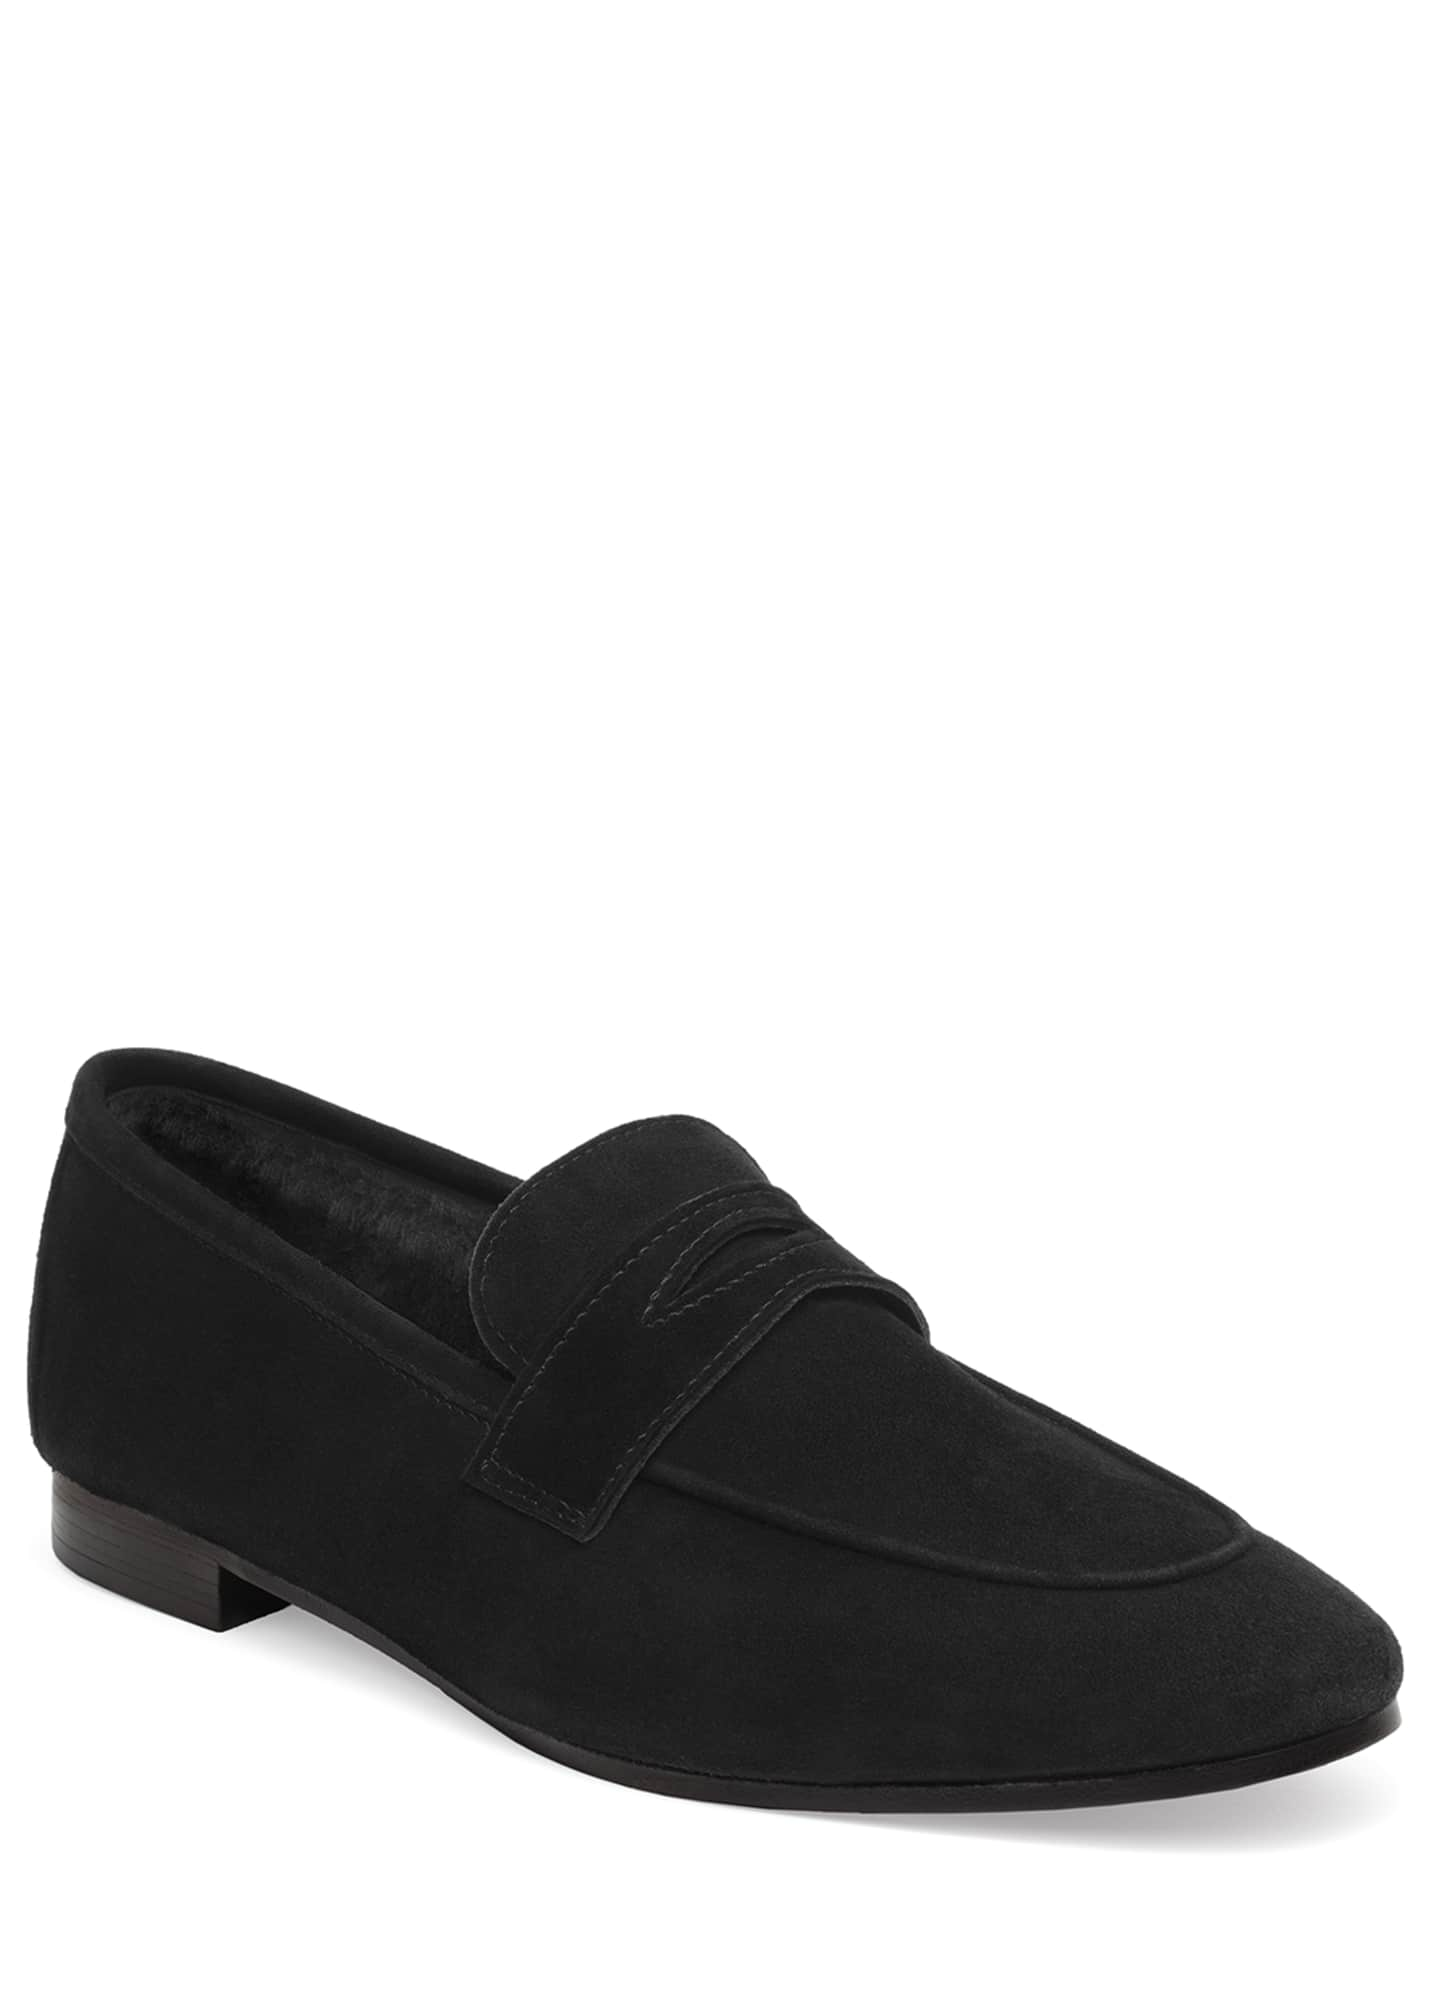 Bougeotte Noir Absolu Suede and Shearling Loafers